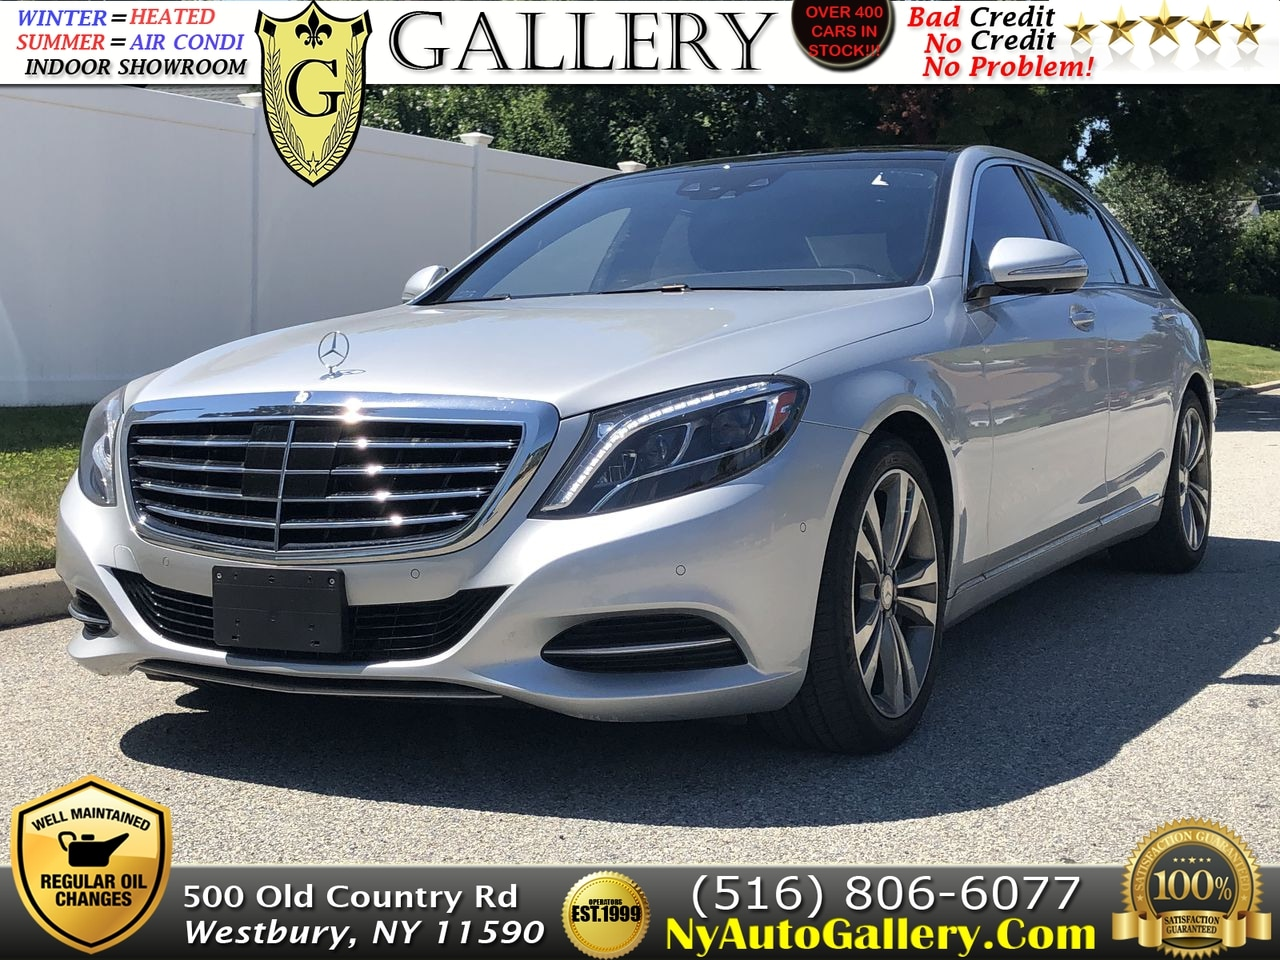 Elegant 2014 Mercedes Benz S Class S 550 4MATIC Sedan